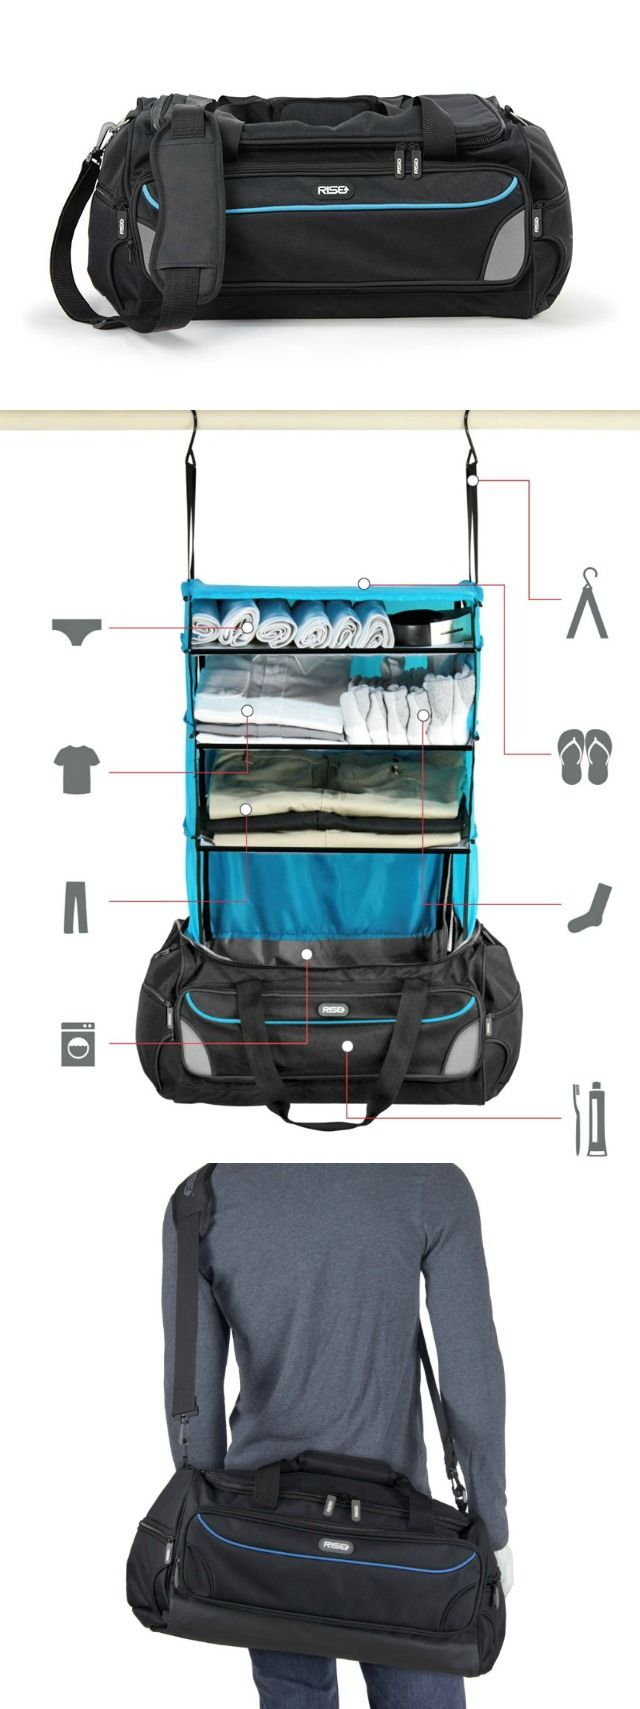 Travelling has never been easier than with the patent pending Rise Gear Weekender collapsible shelving system which keeps your clothes folded and organized.